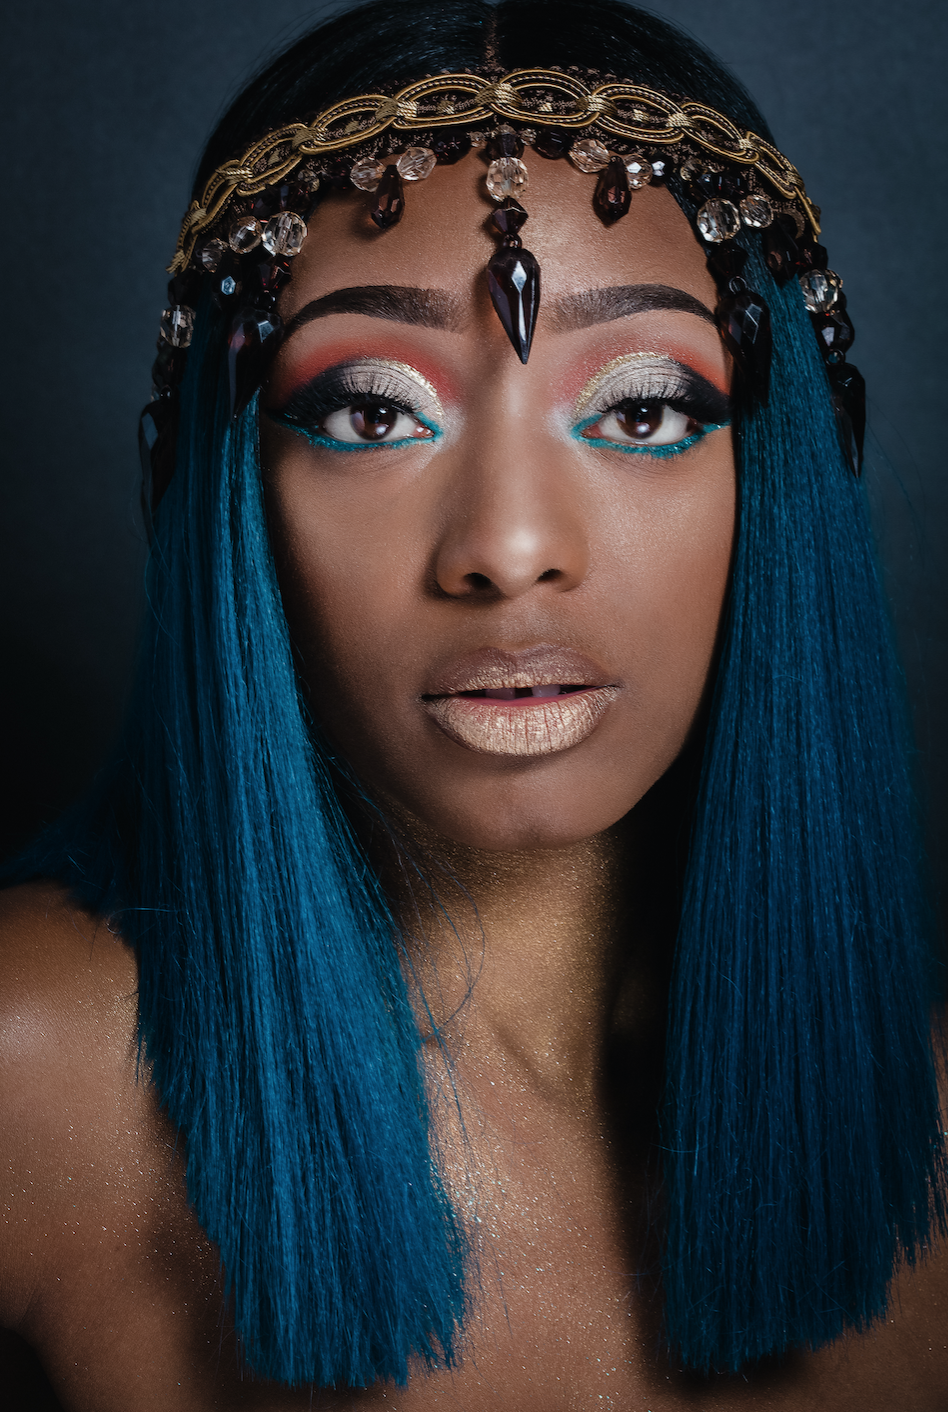 Cleopatra - No two Cleopatras will ever look the same, but you can slay your look this year.